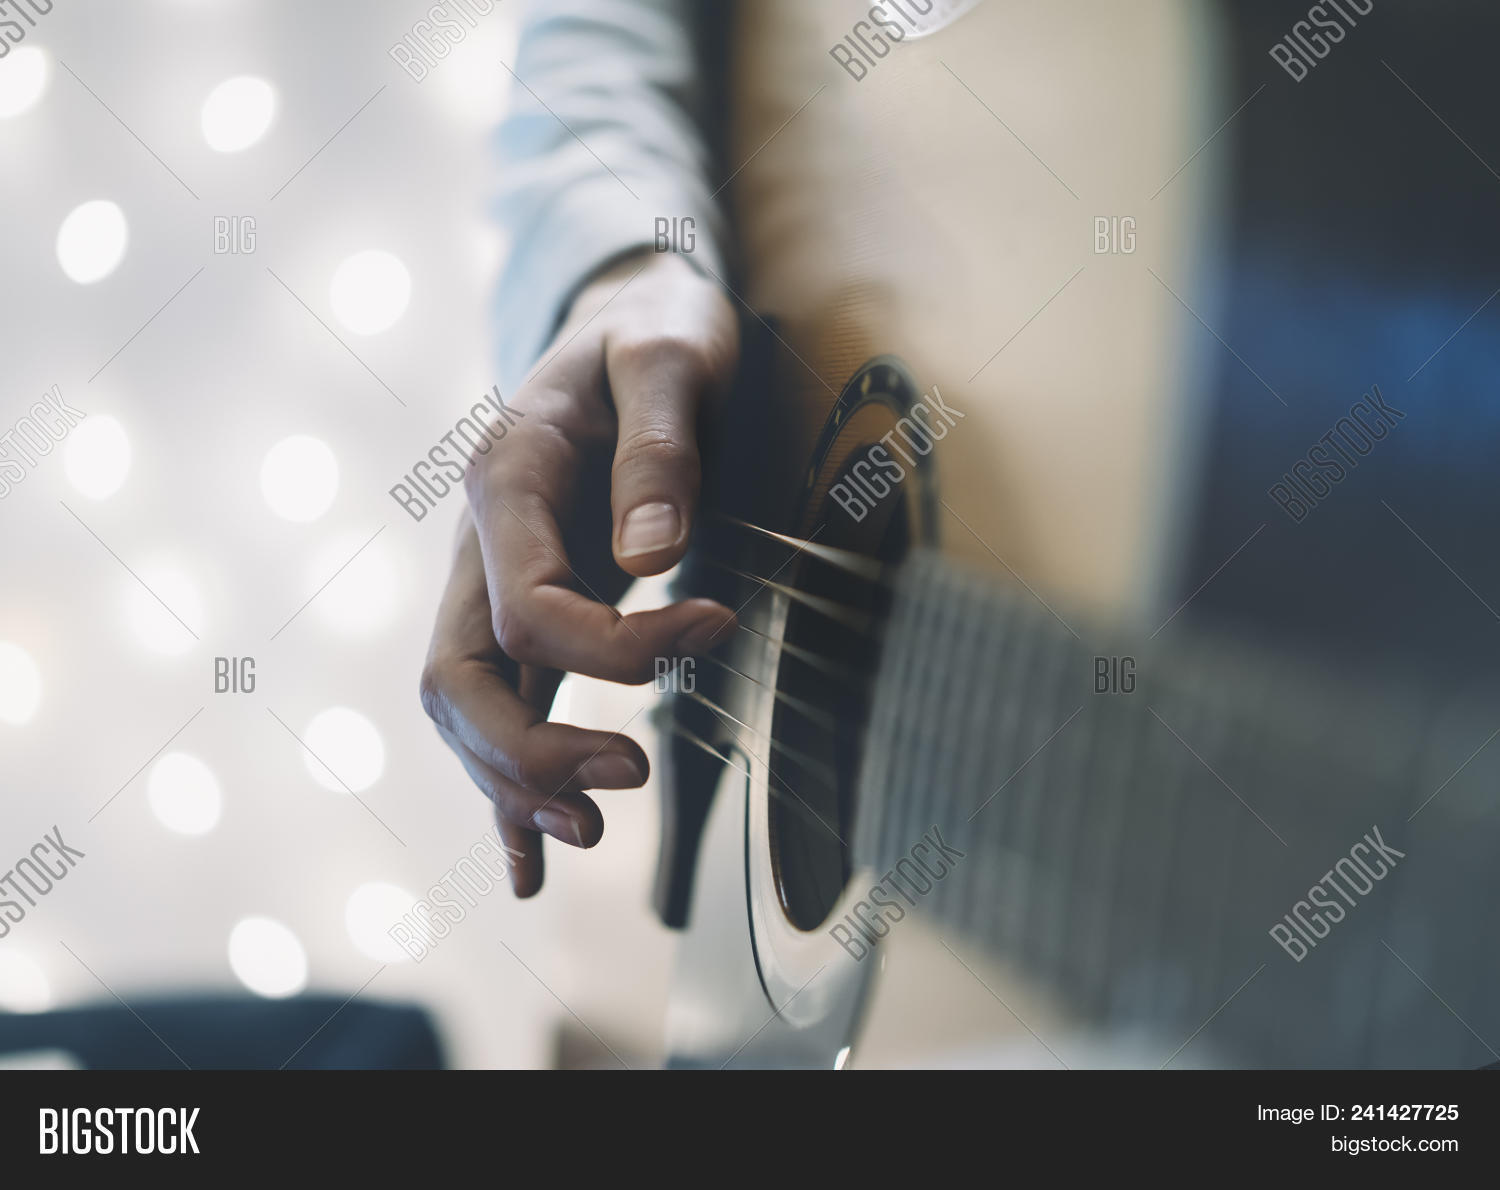 acoustic,atmosphere,backdrop,background,blue,blur,bokeh,chord,christmas,closeup,effect,exposure,female,festive,finger,flare,glitter,glowing,gold,guitar,guitarist,hand,hipster,holiday,home,instrument,interior,jazz,learning,lifestyle,light,music,musical,musician,night,people,play,player,playing,romance,romantic,shine,shiny,sound,space,string,student,studying,up